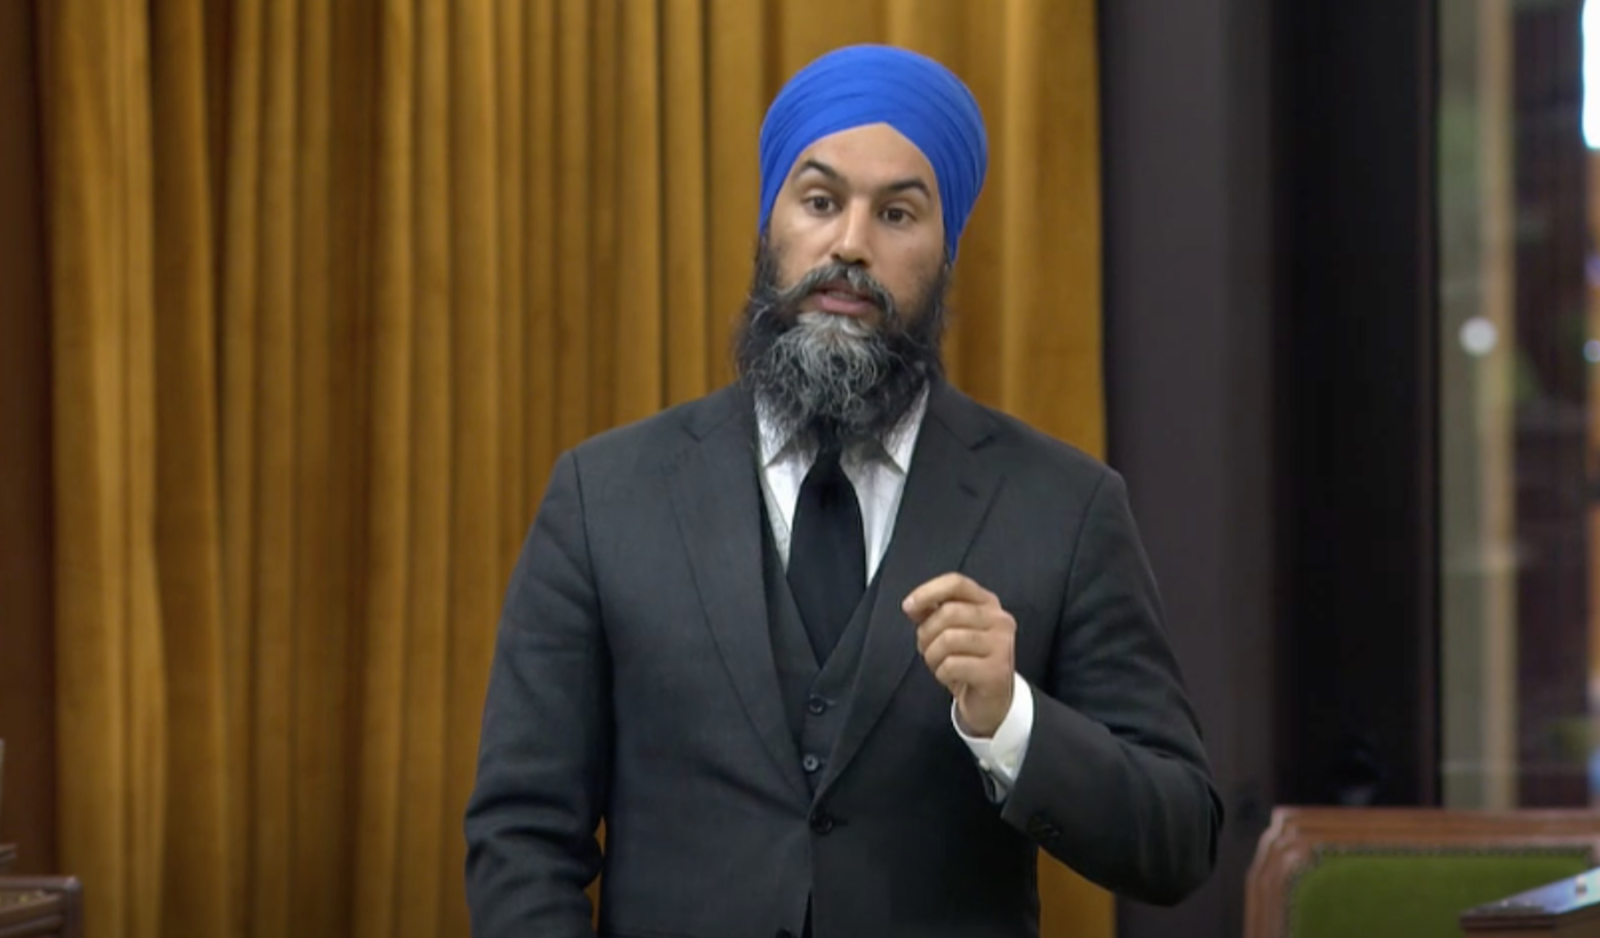 NDP Deserves Credit For Dramatically Improving COVID-19 Benefits